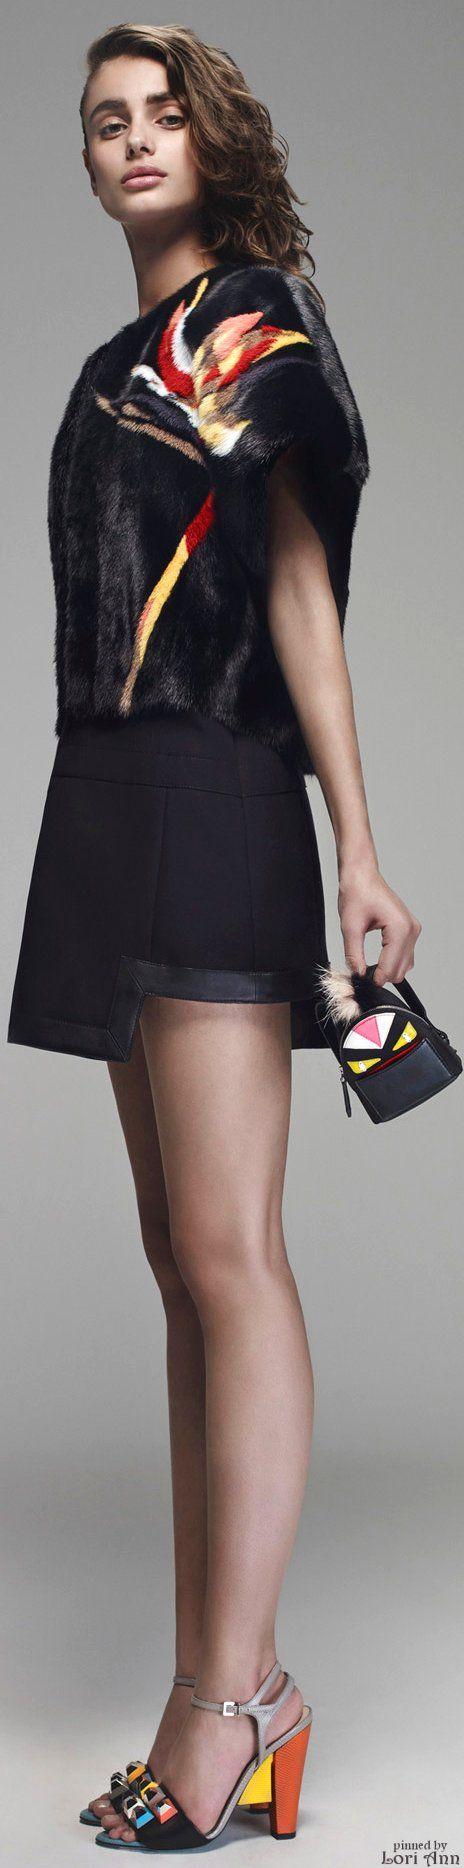 Fendi Resort 2016, love this black (faux) fur top // Pinned by Dauphine Magazine x Castlefield - Curated by Castlefield Bridal & Branding Atelier and delivering the ultimate experience for the haute couture connoisseur! Visit www.dauphinemagazine.com, @dauphinemagazine on Instagram, and @dauphinemag on Pinterest • Visit Castlefield: www.castlefield.co and @ castlefieldco on Instagram / Luxury, haute couture, fashion, weddings, bridal, style, décor, travel, art, design, jewelry, photography